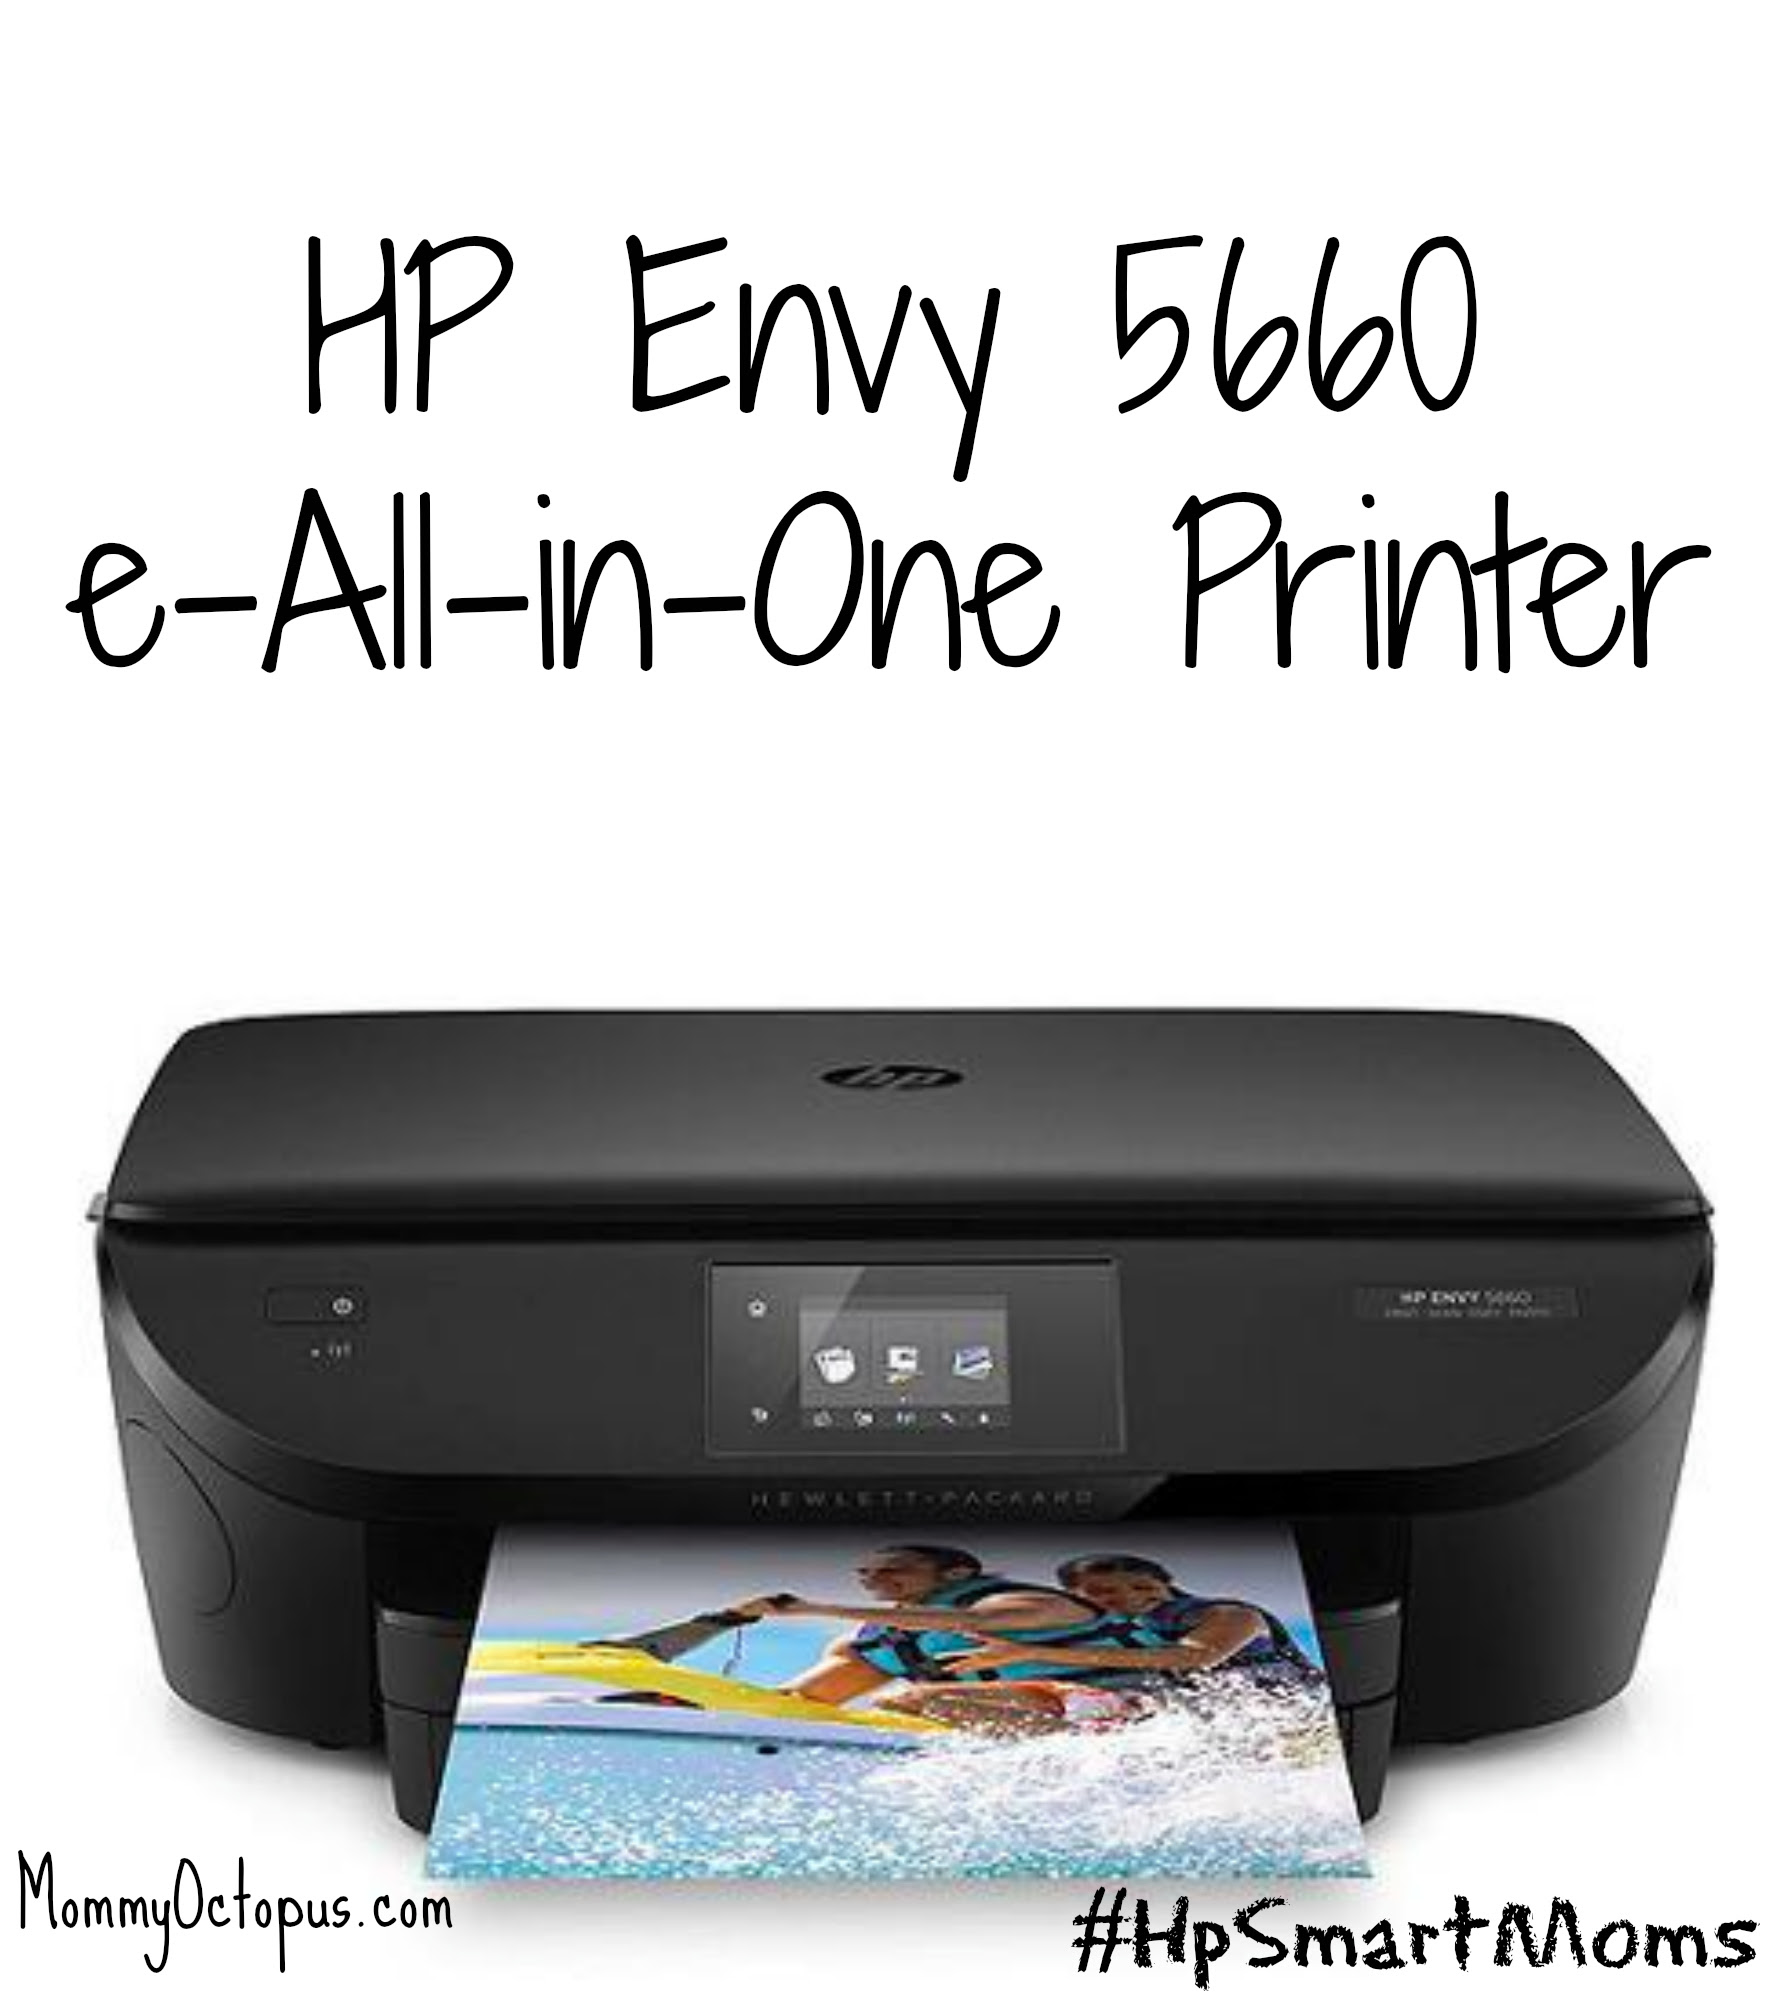 Introducing The Hp Envy 5660 E All In One Printer This Homeschool